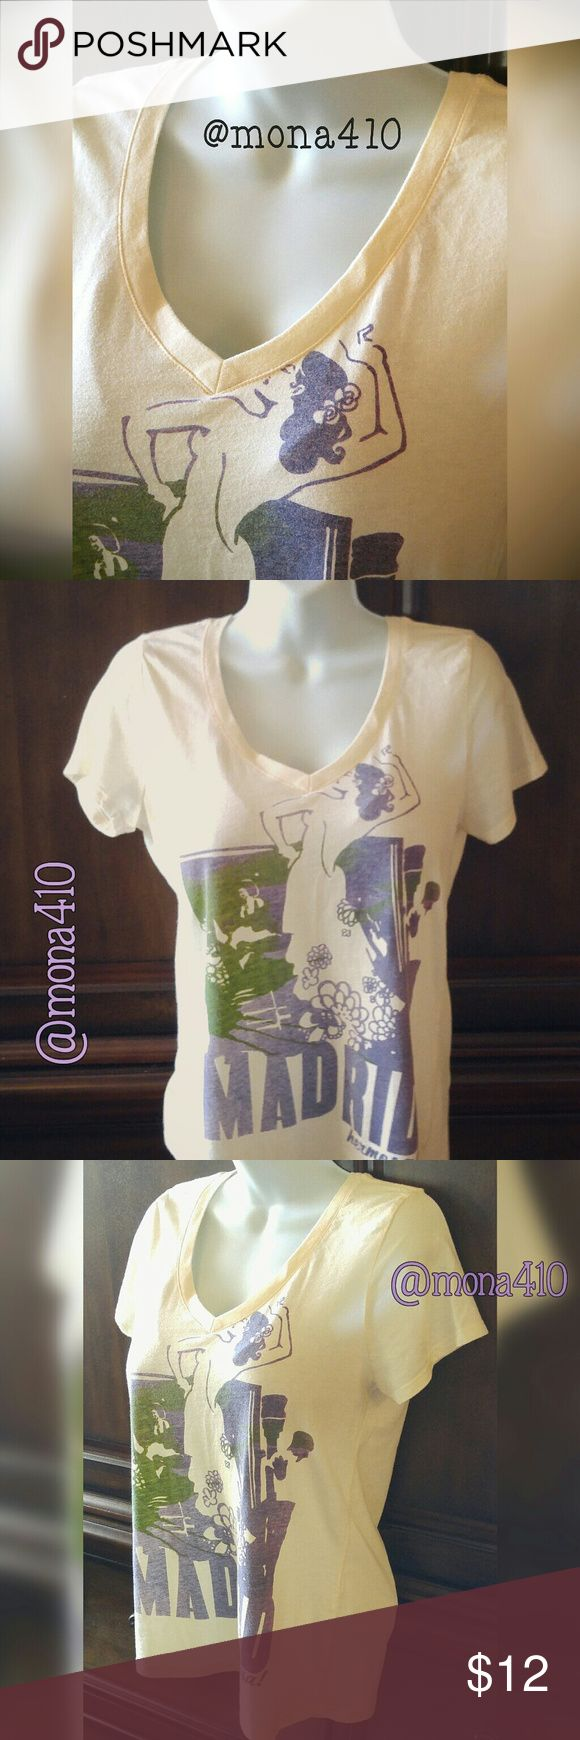 🆕 List - NWOT/Old Navy V-Neck Graphic Shirt This Old Navy shirt is a light yellow, almost tan color. Very lightweight and comfortable and perfect for Summer! V-neckline, graphics are of a Latina dancer and says Madrid Hermosa. Size is Medium. Shirt is new and never worn.   ⚡Bundle & save on shipping! 15% bundles of 3 or more.  * Smoke-free home * Sorry, no trades or PayPal Old Navy Tops Tees - Short Sleeve